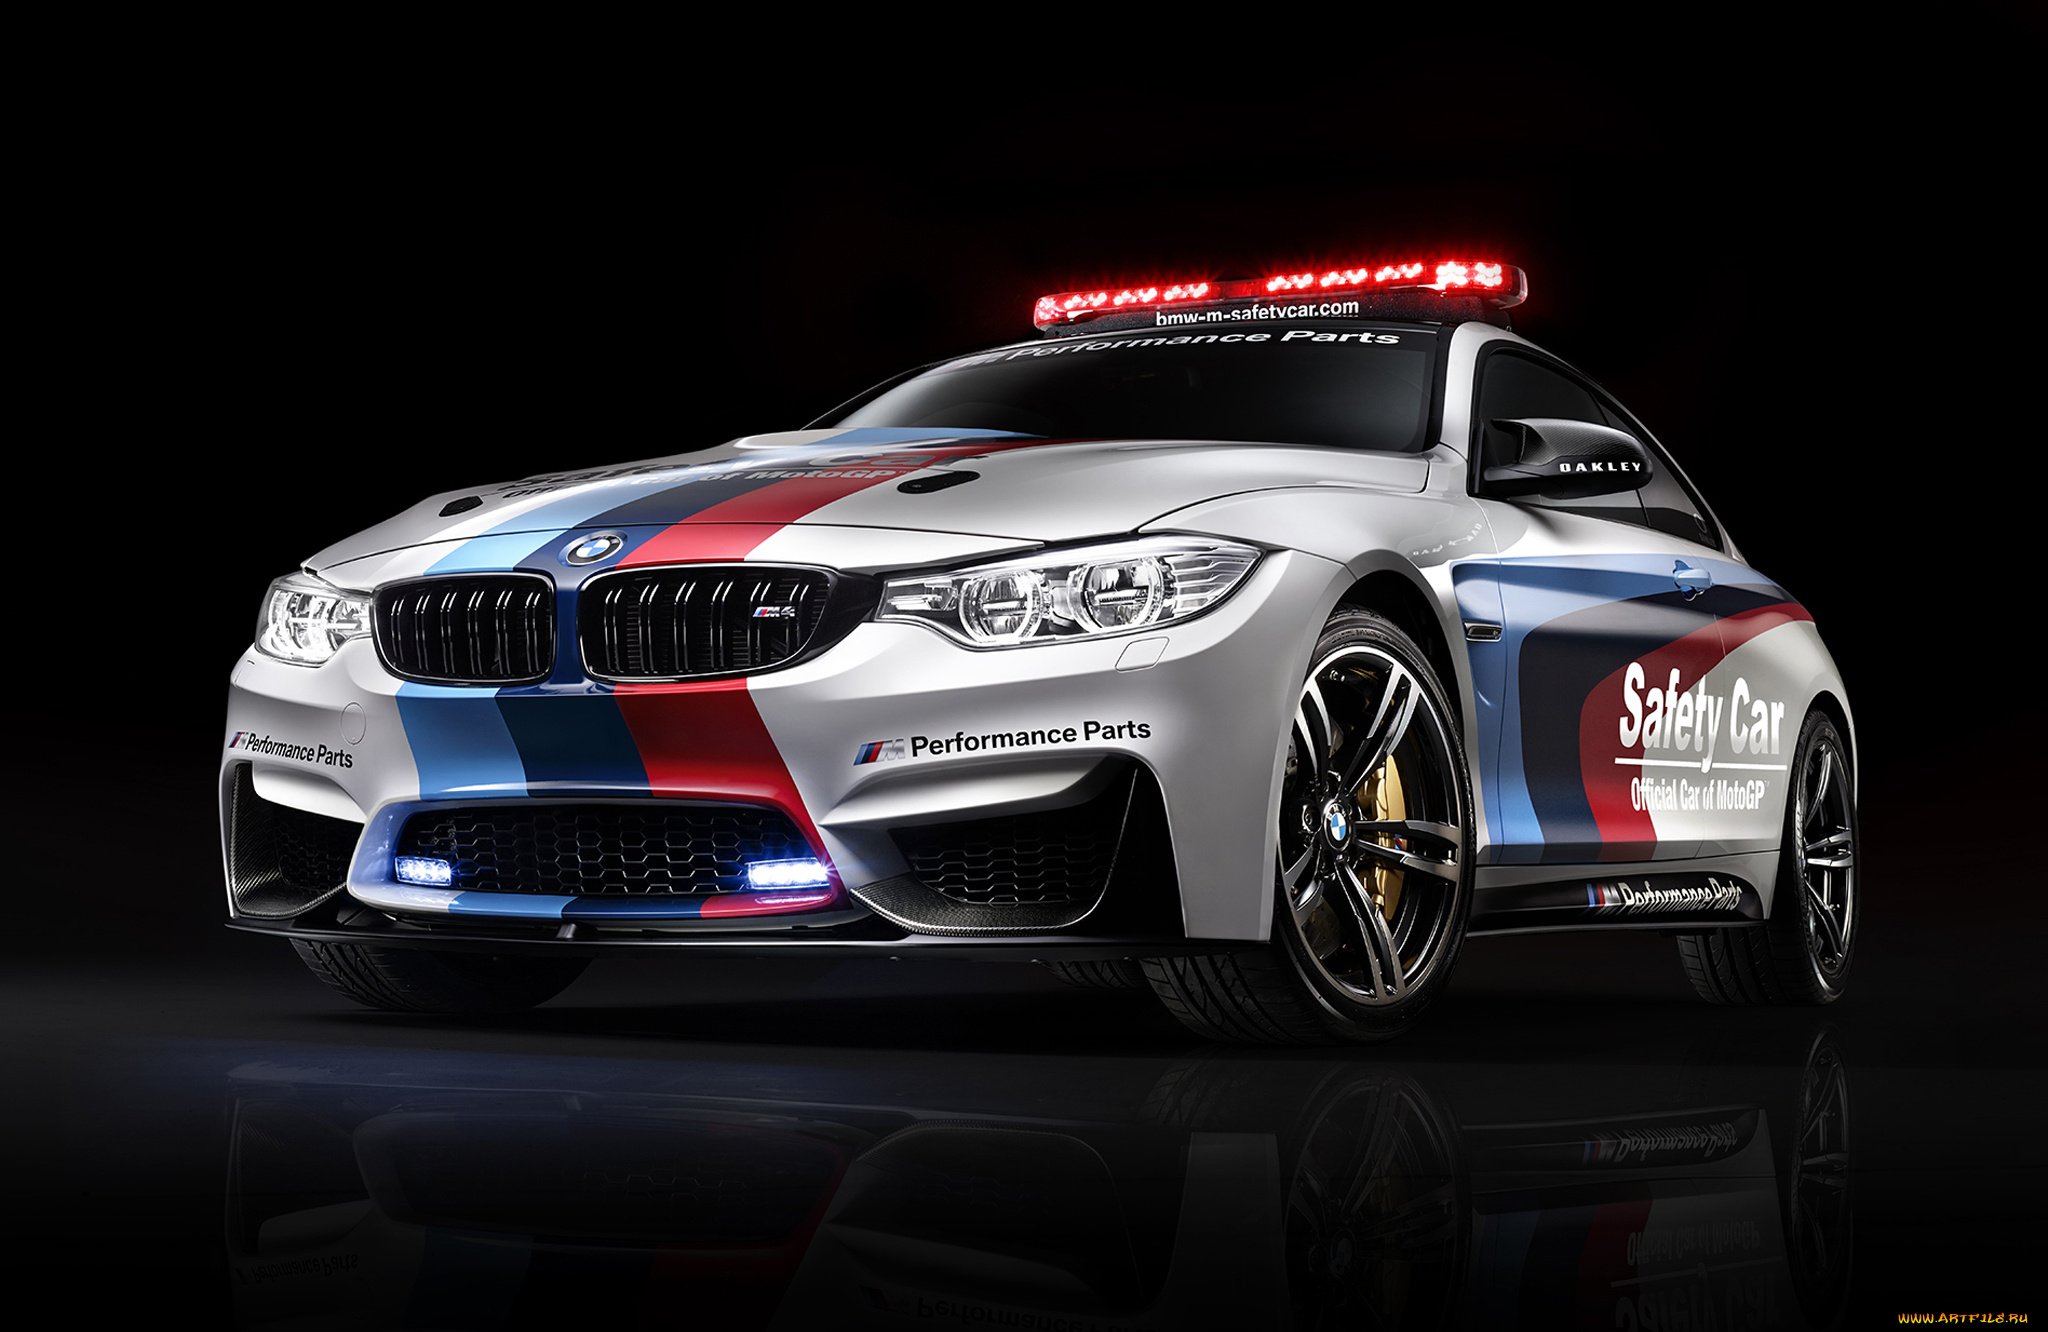 bmw, m4, coupe, moto-gp, safety, car, 2014, автомобили, полиция, coupe, m4, bmw, moto-gp, 2014, car, safety